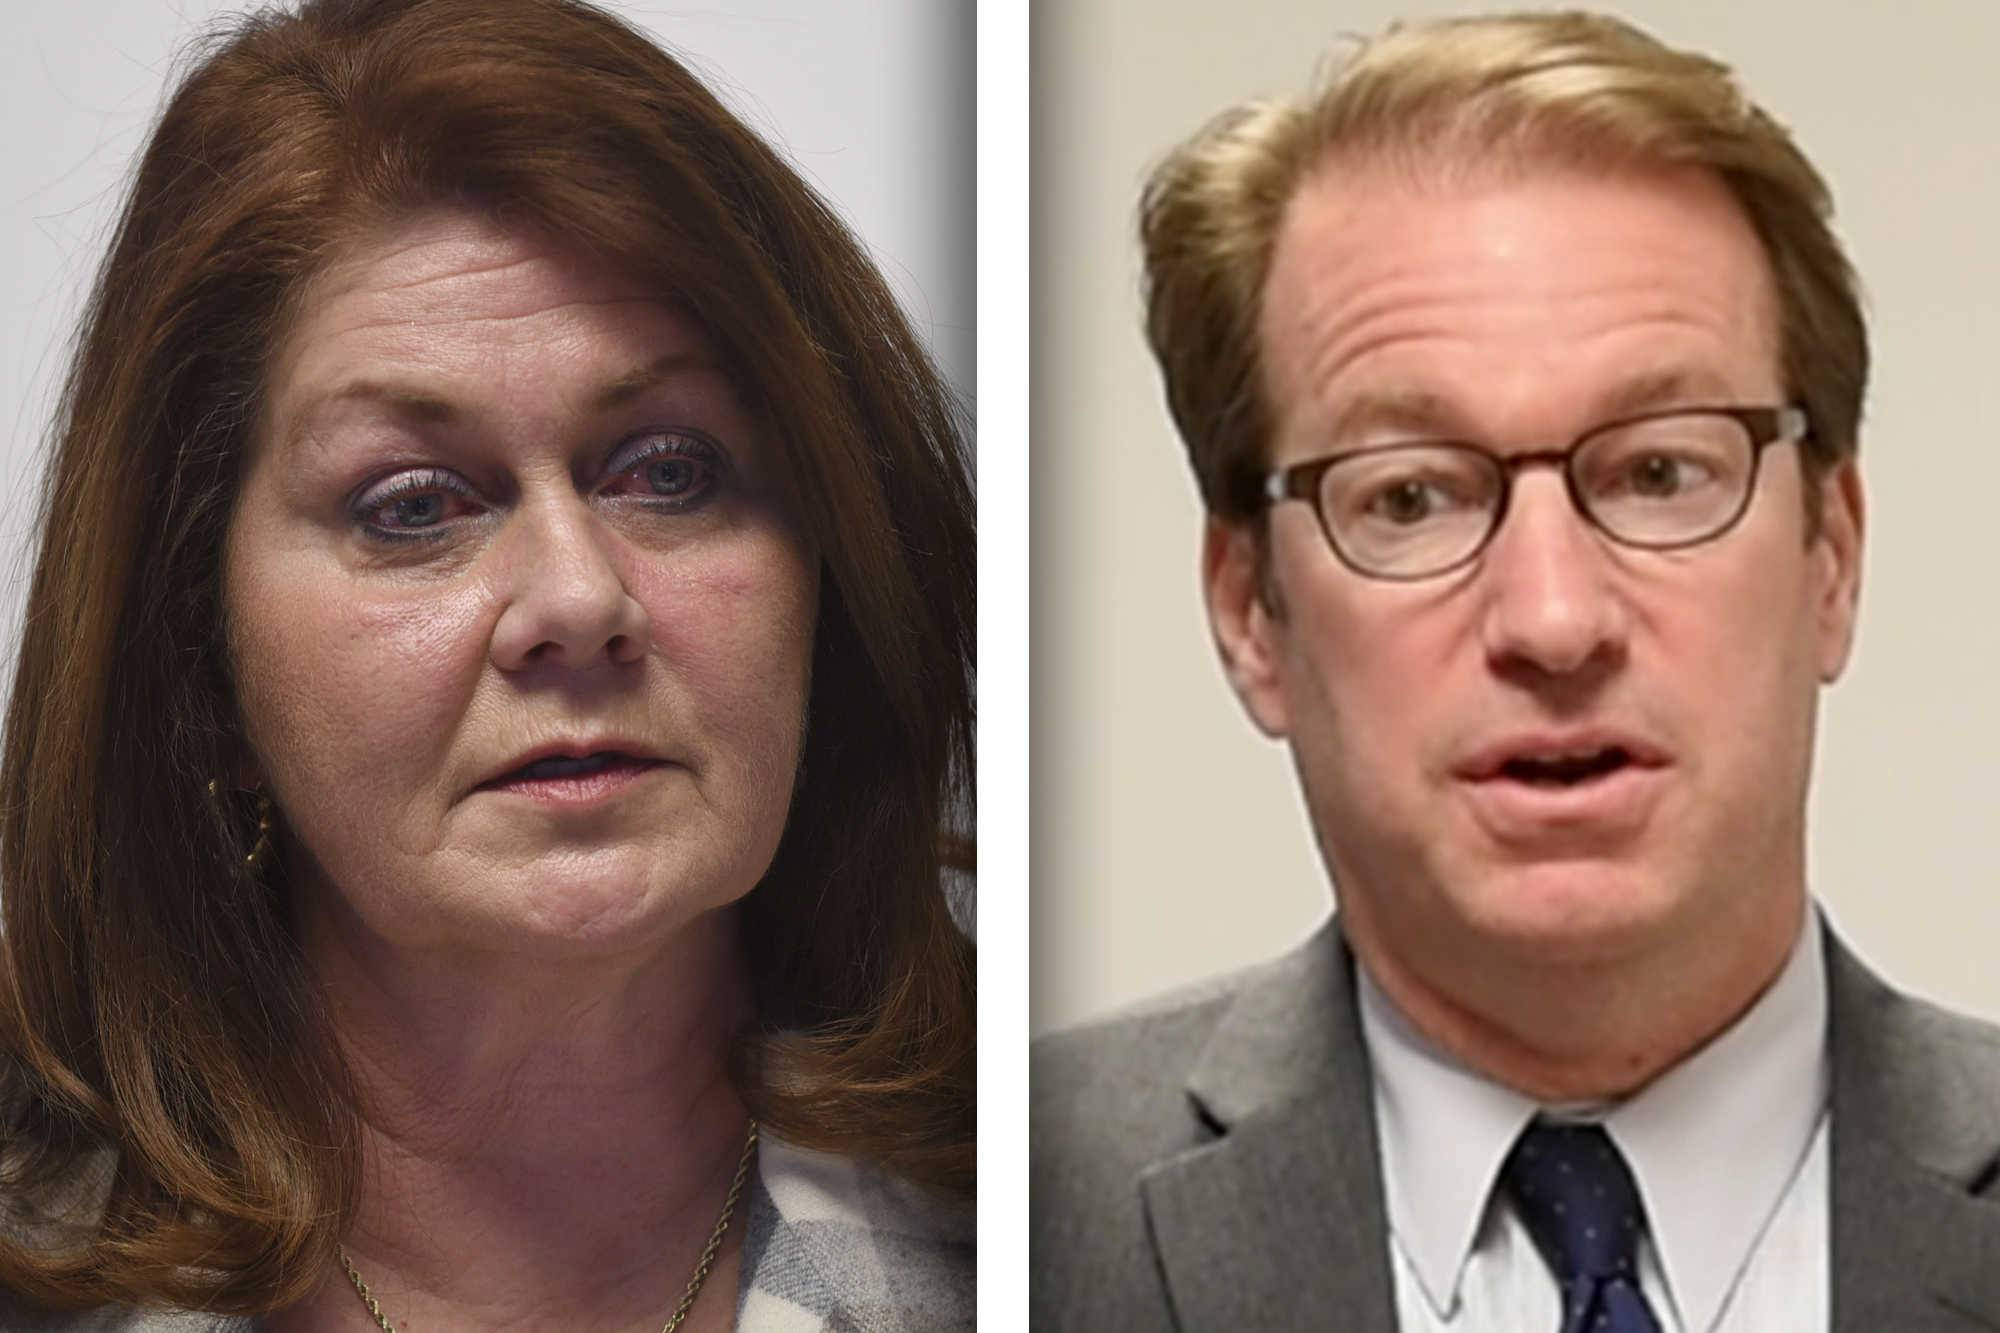 Amanda Howland, left, and U.S. Rep. Peter Roskam